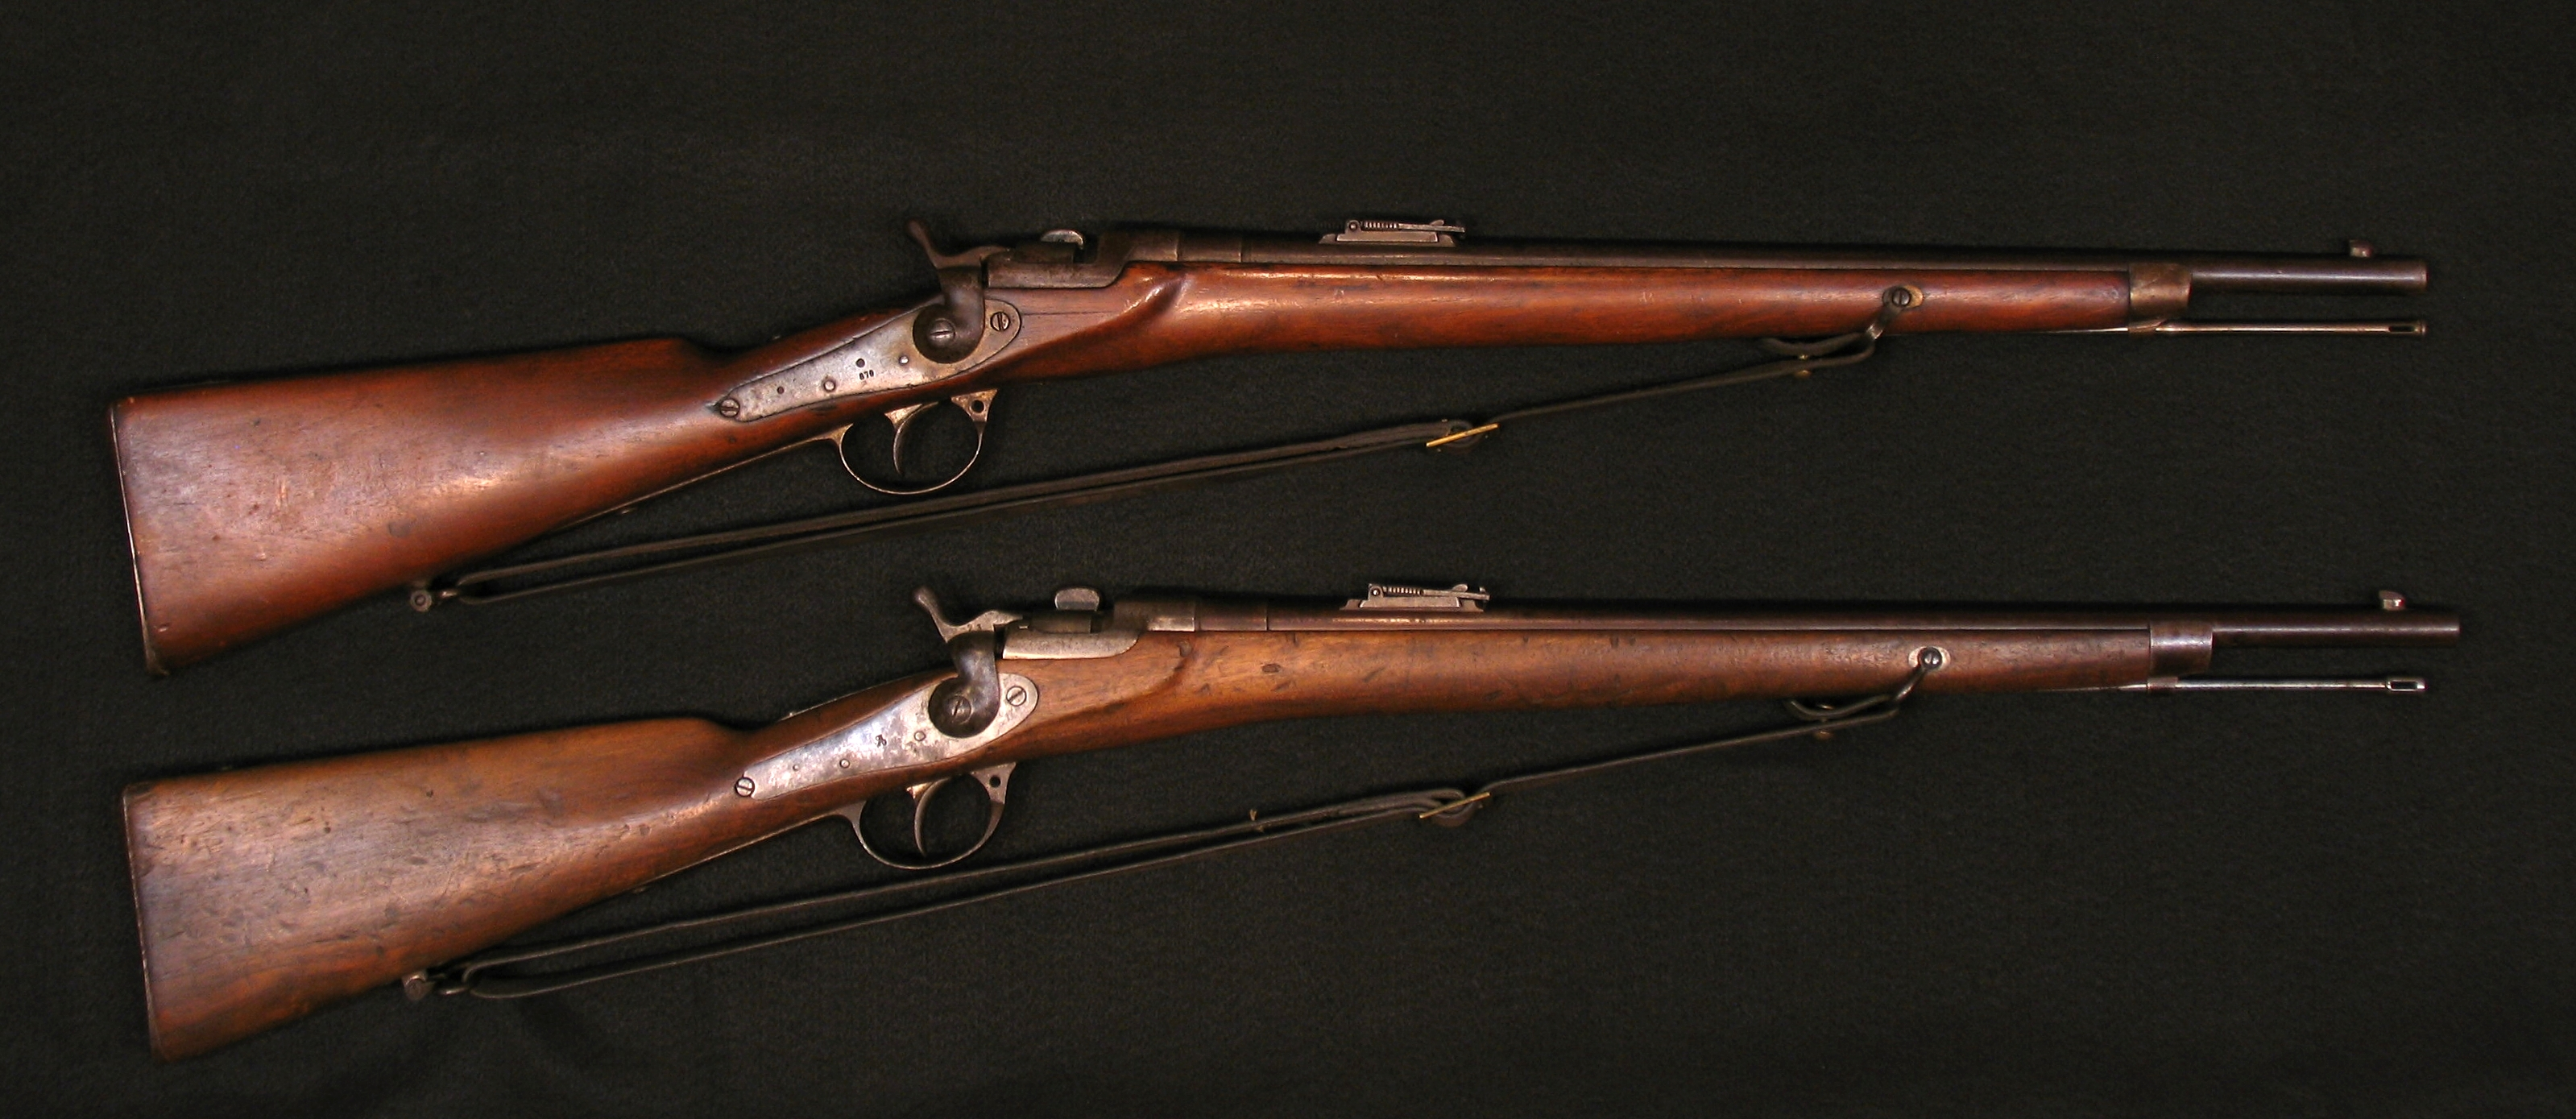 Click image for larger version.  Name:Werndl Carbines 67 E-K-Gew R-2a.jpg Views:2 Size:2.57 MB ID:3708381